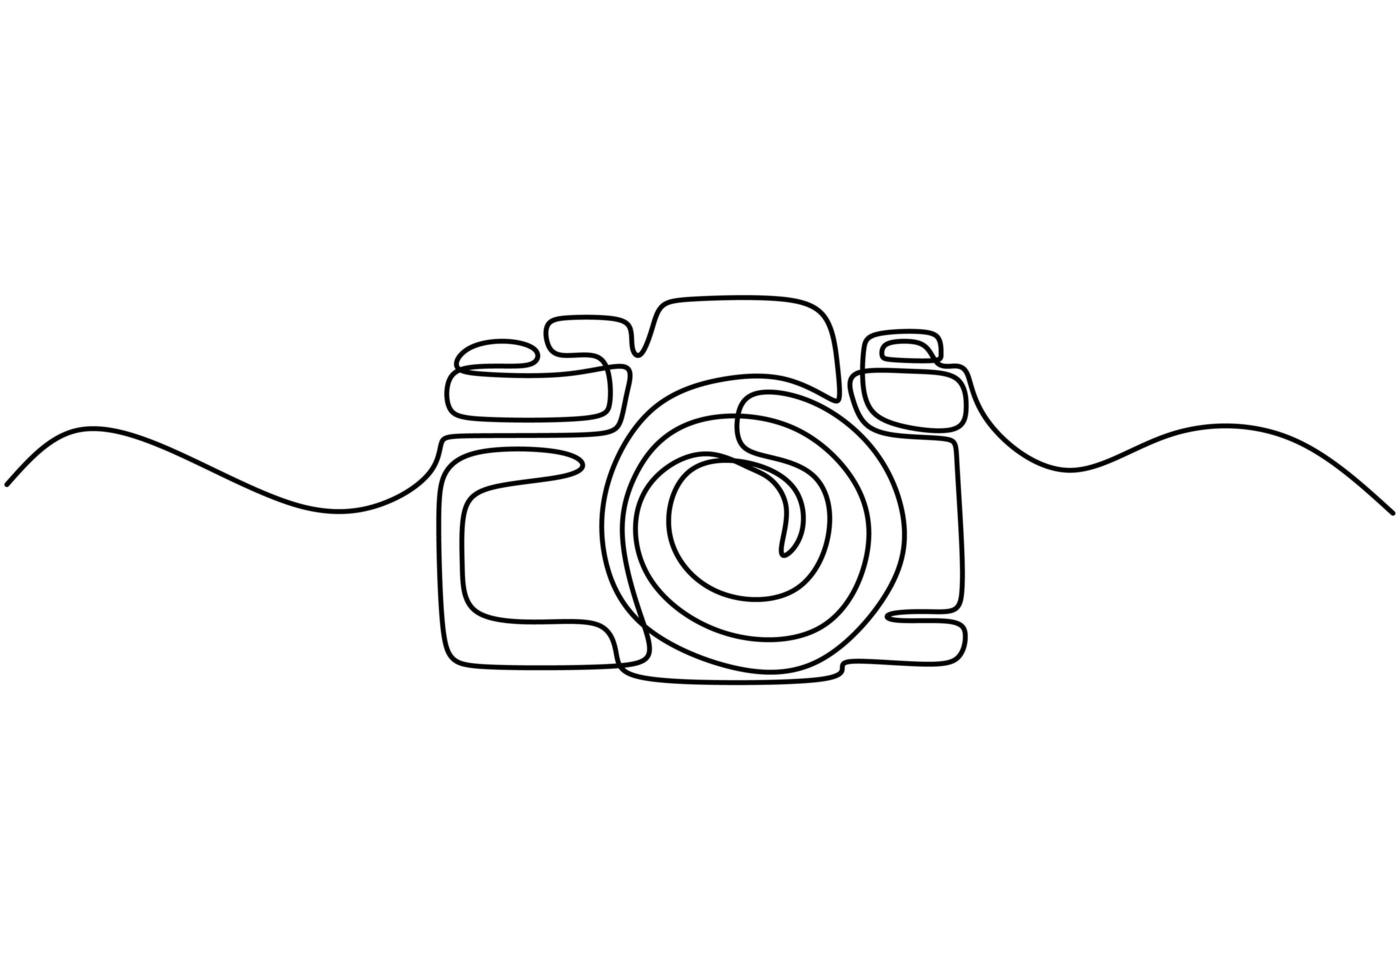 One line drawing of camera linear style. Black image isolated on white background. Hand drawn minimalism style vector illustration